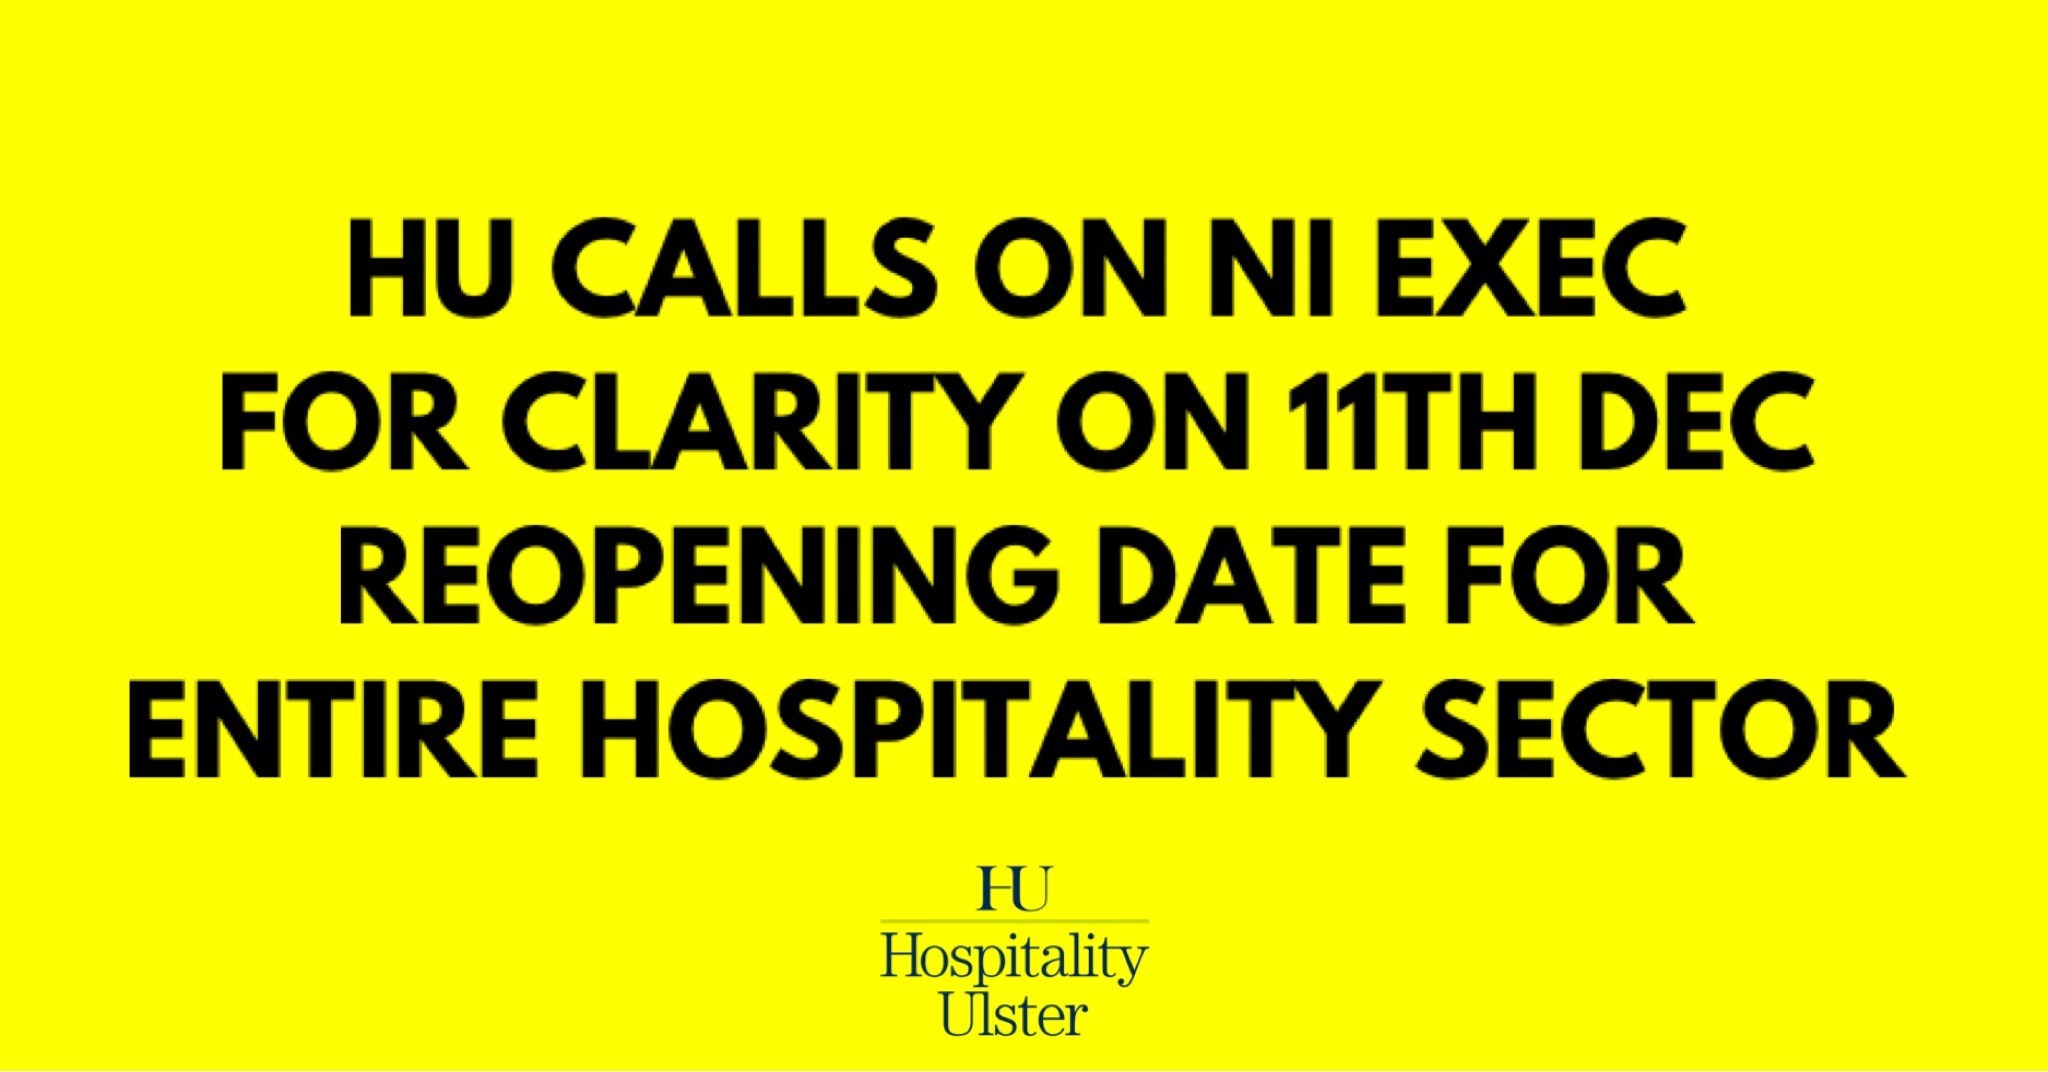 HU CALLS ON NI EXEC FOR CLARITY ON 11TH DECEMBER REOPENING DATE FOR ENTIRE HOSPITALITY SECTOR